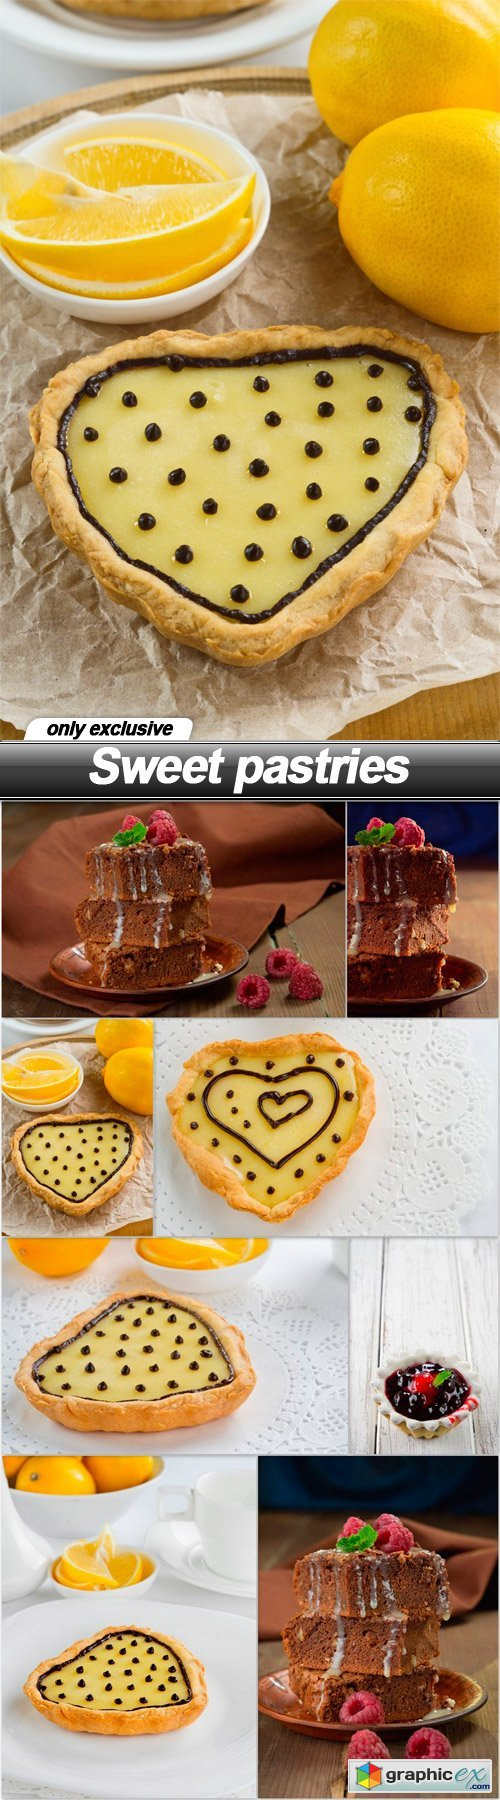 Sweet pastries - 8 UHQ JPEG